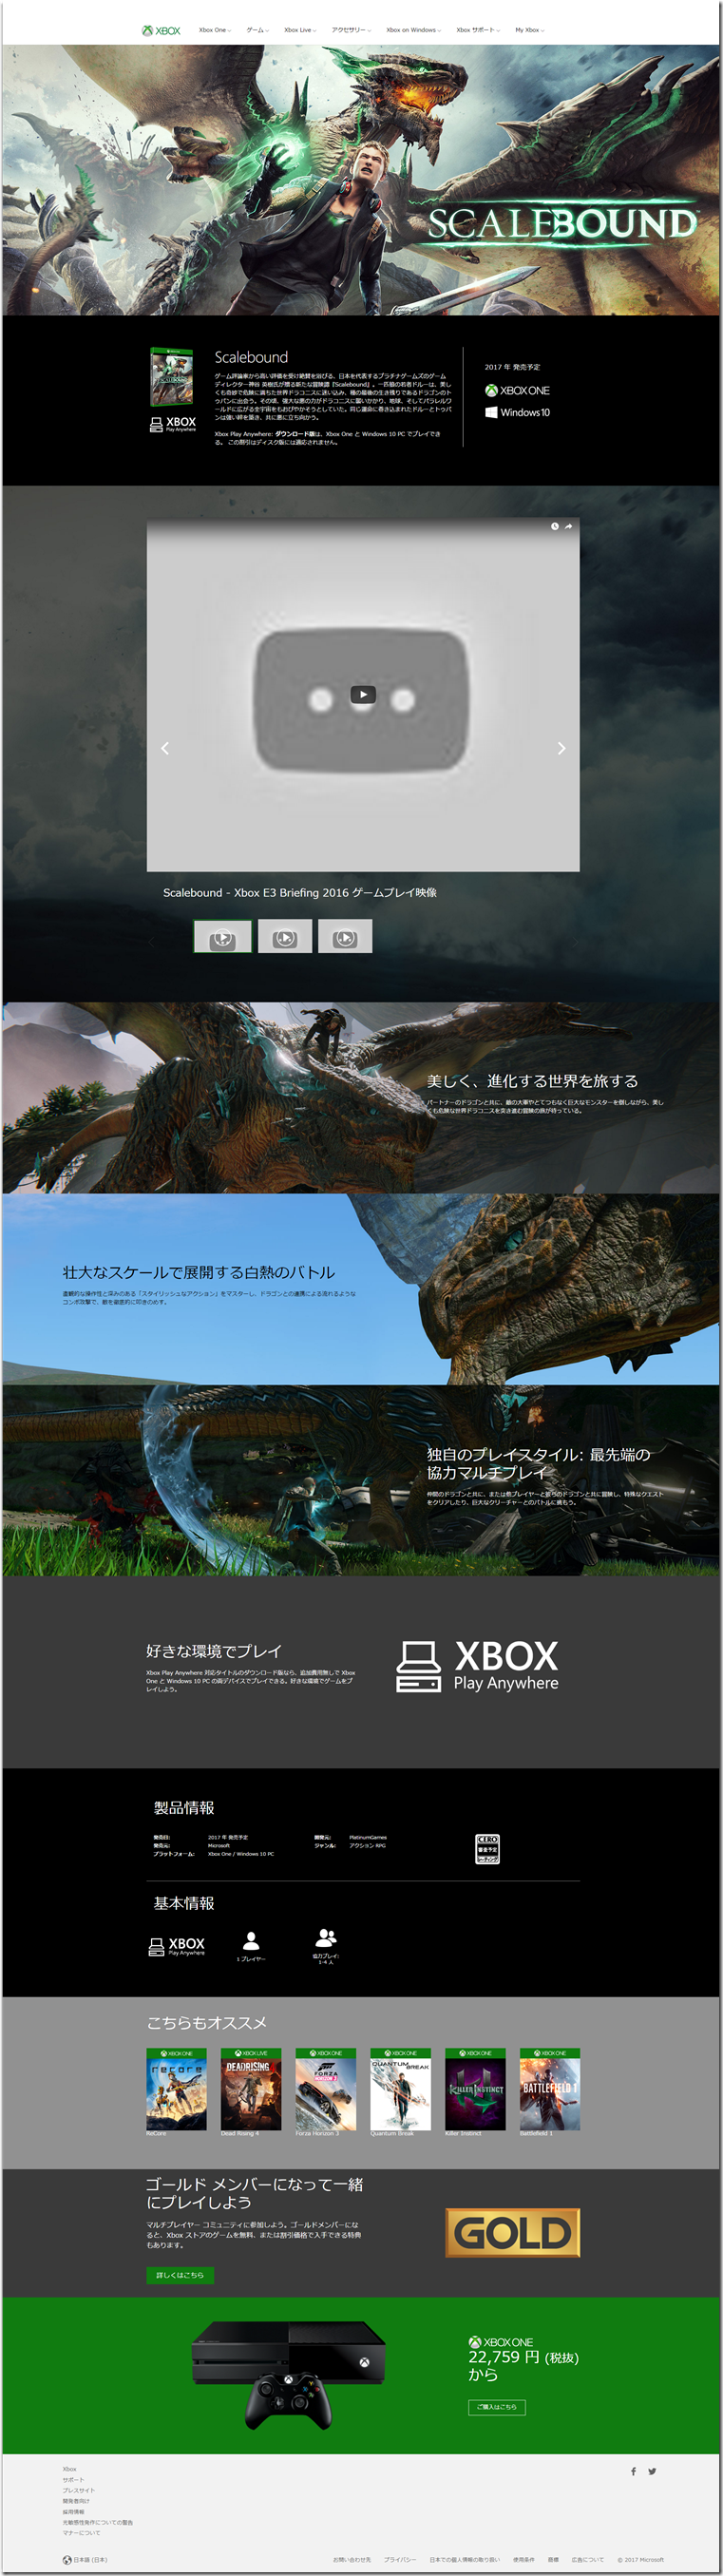 FireShot Capture 2 - Scalebound I Xbox_ - http___webcache.googleusercontent.com_search